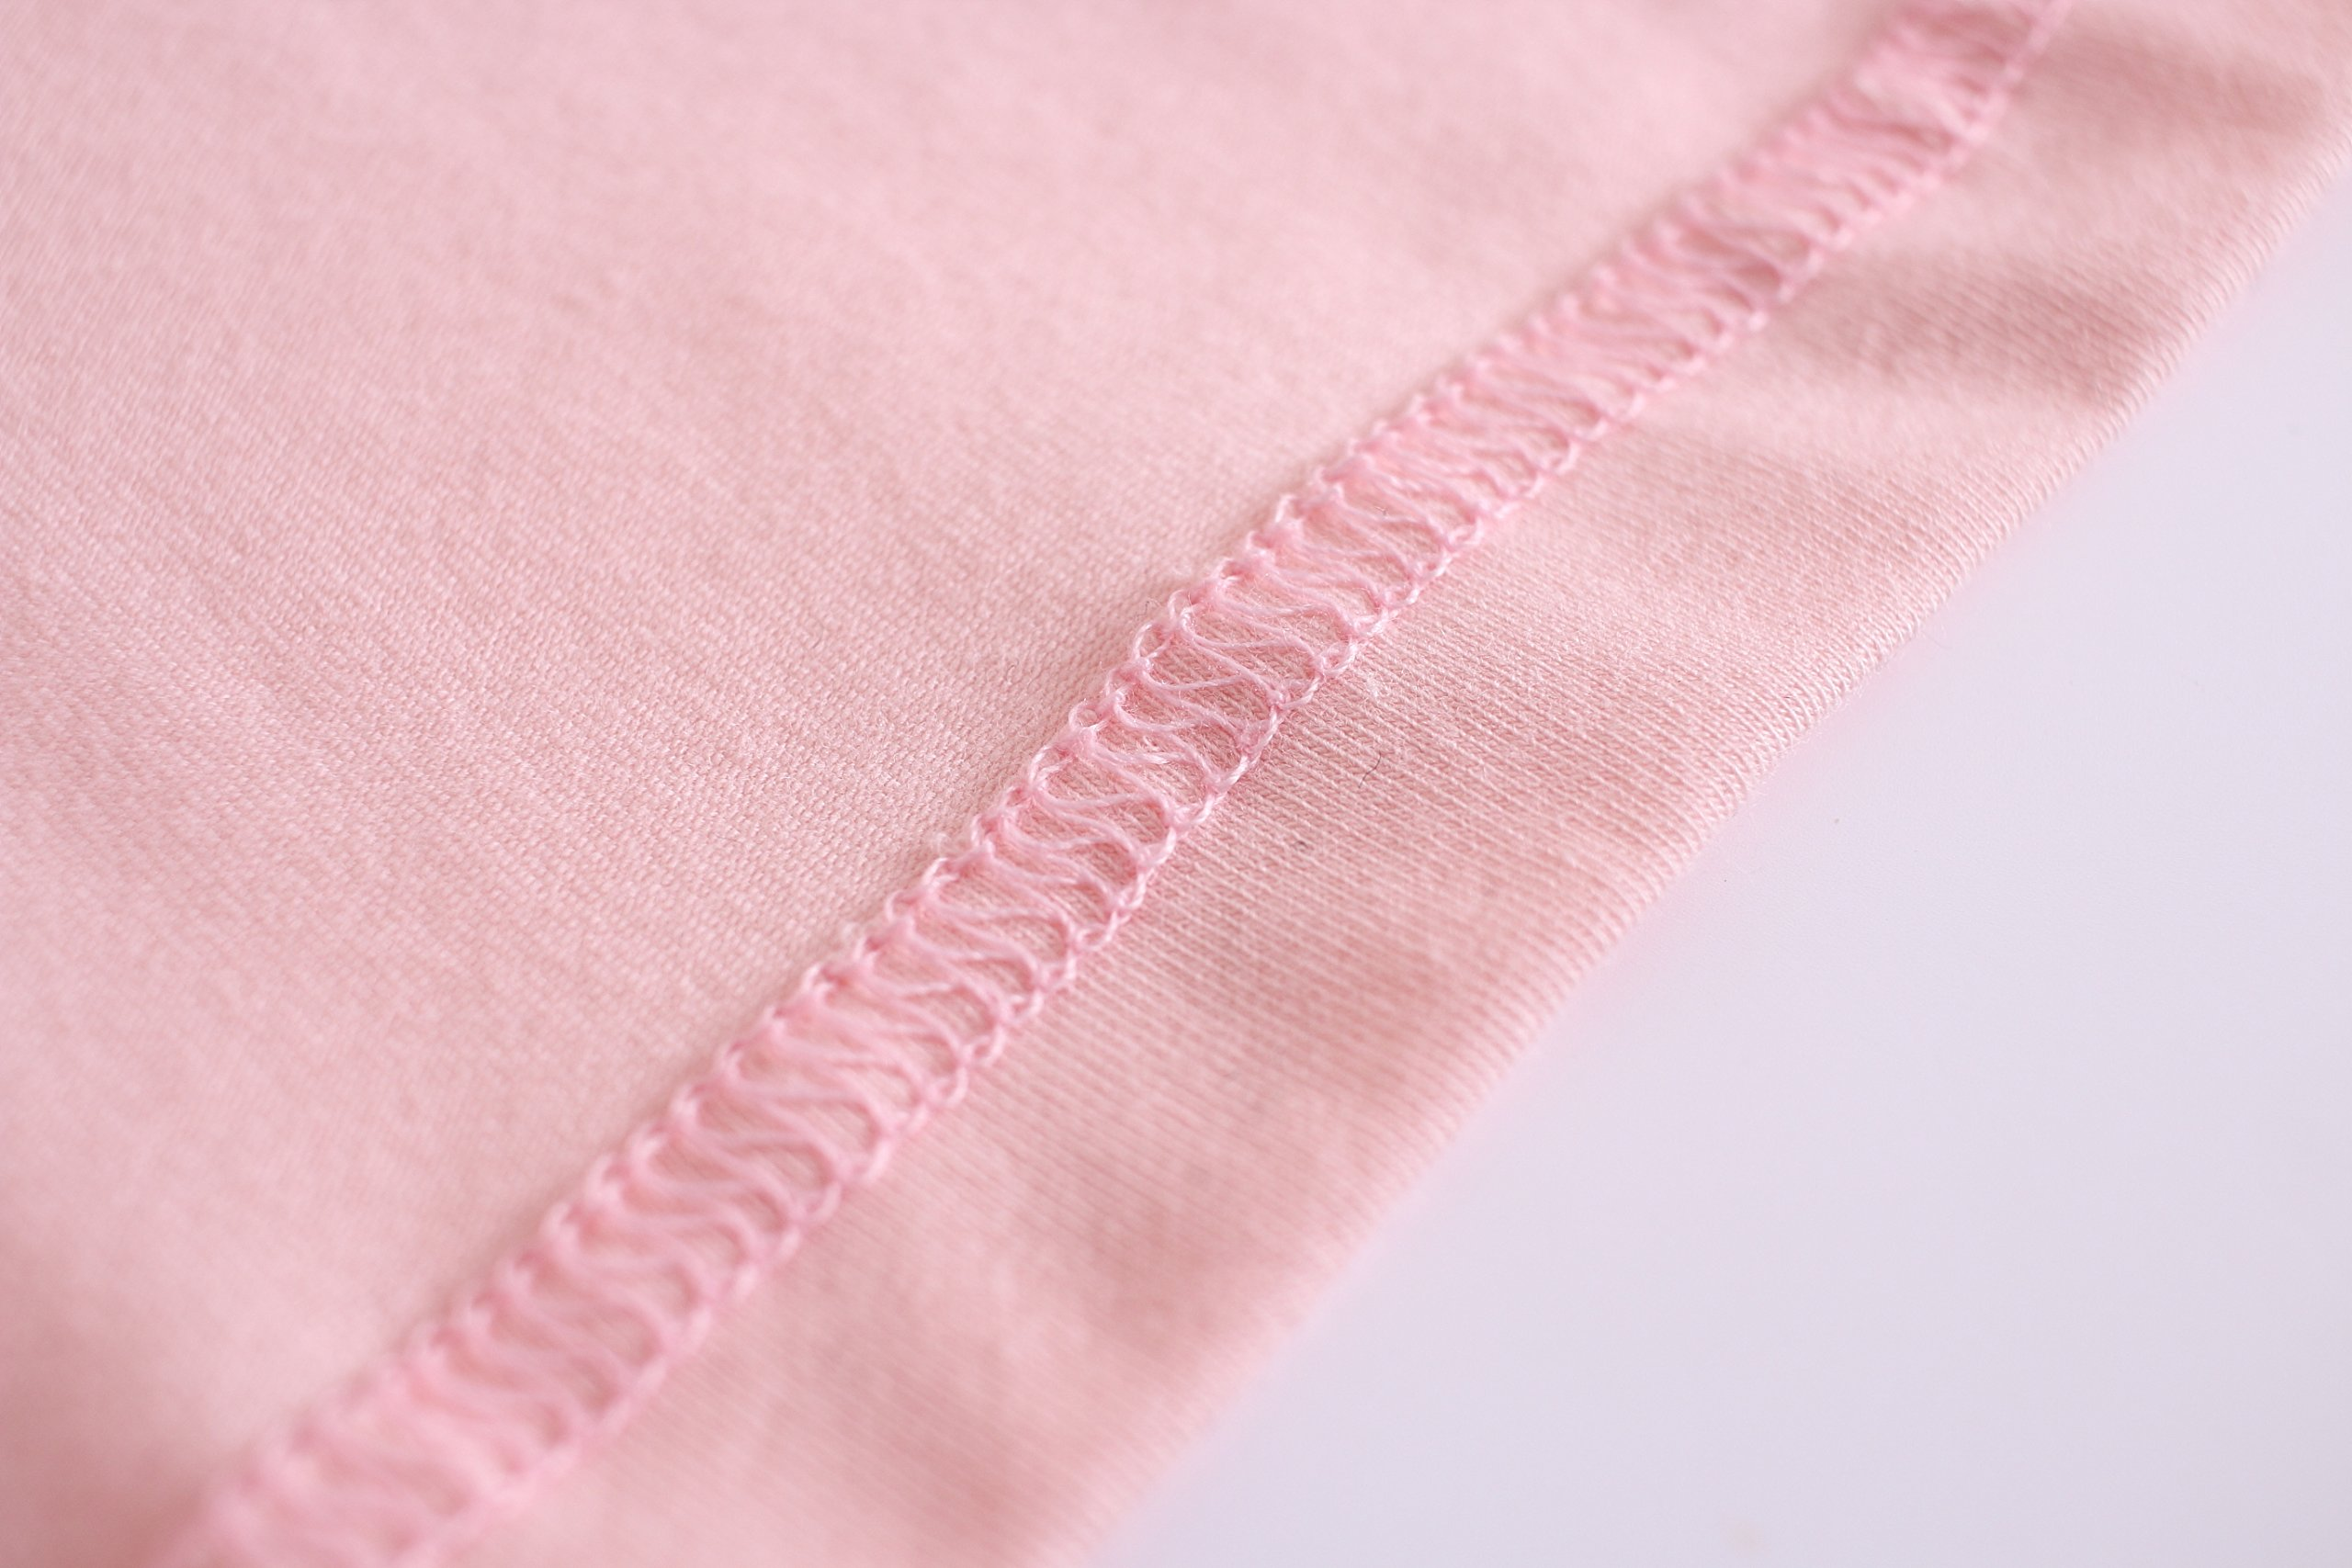 Big Girls' Animal Nightgowns Bunny Sleepwear Cotton Nightie Pink for Size 14 by AOSKERA (Image #6)